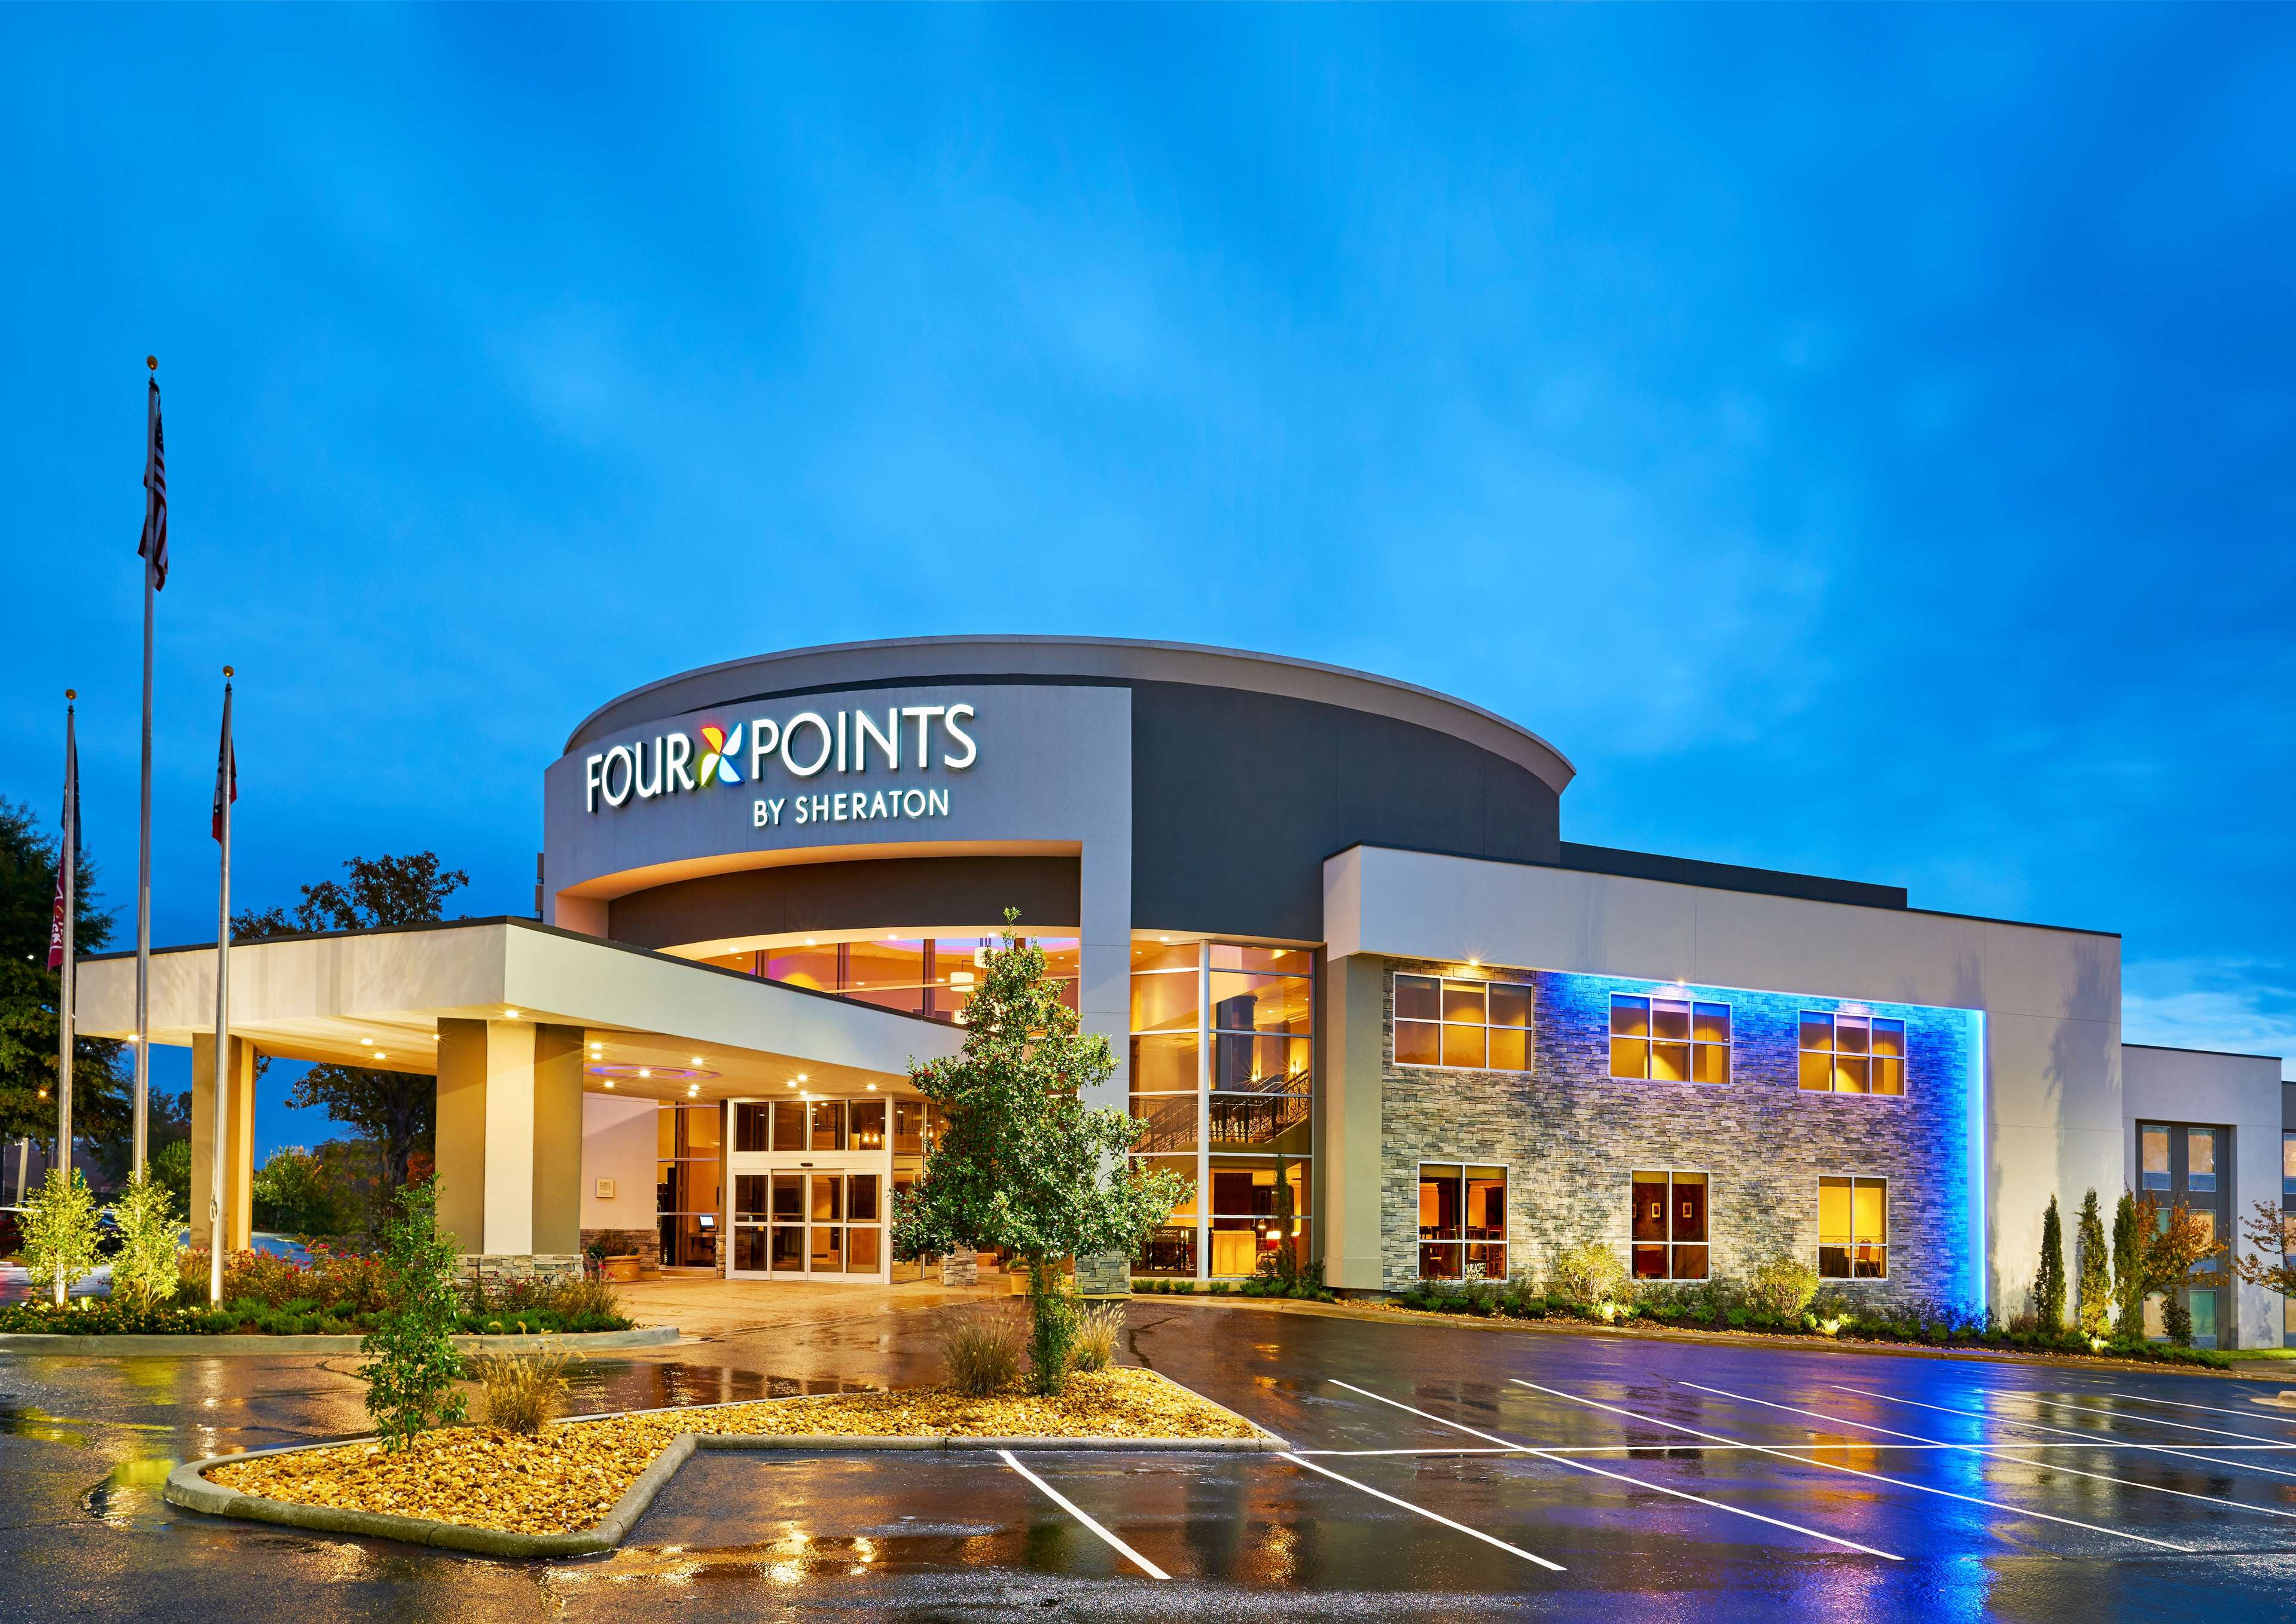 Four Points by Sheraton Little Rock Midtown image 0